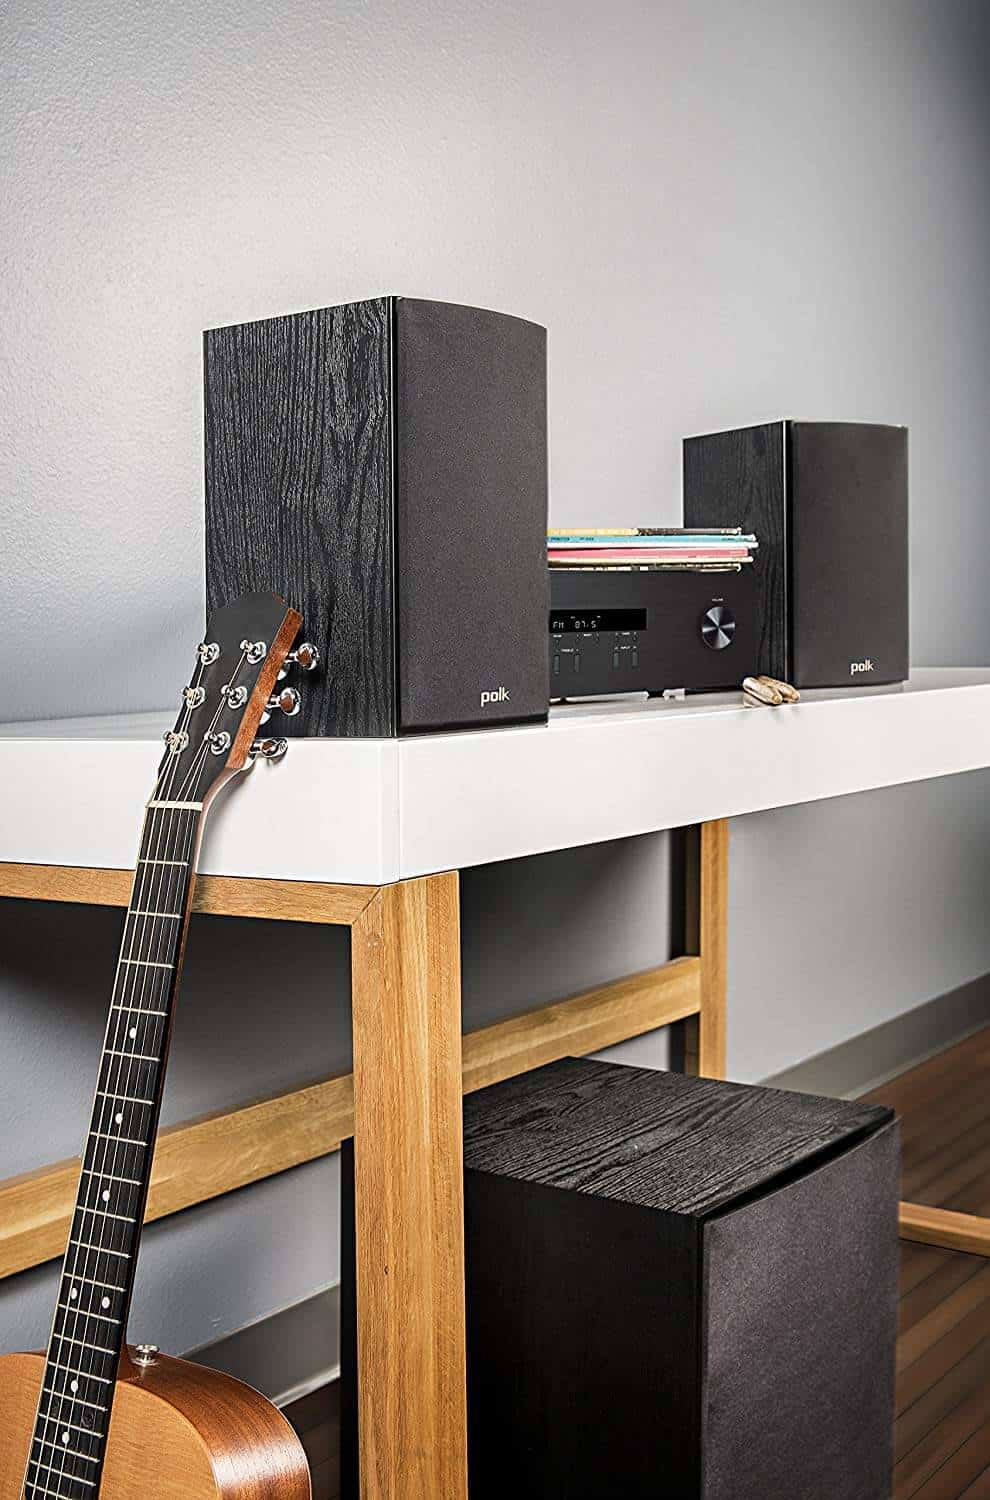 Polk Audio 100 Watt Home Theater Bookshelf Speakers